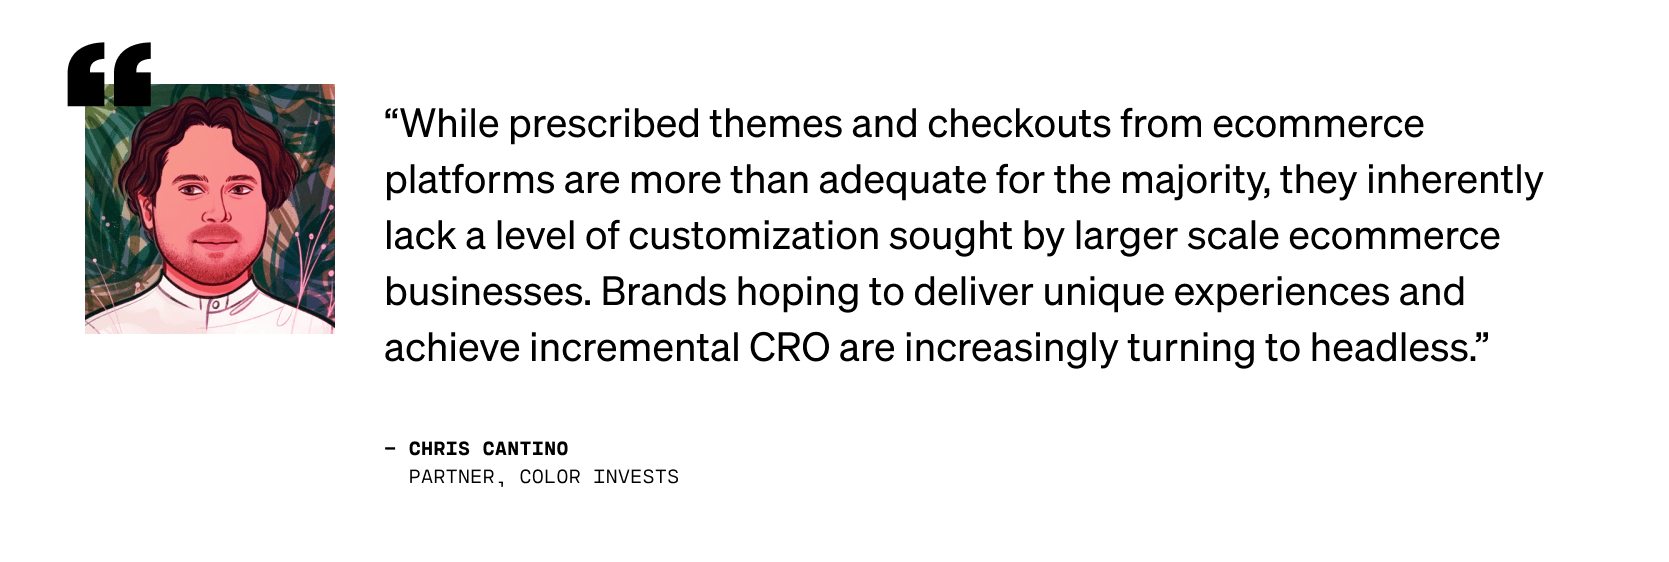 Quote from Chris Cantino, Partner at Color Invests